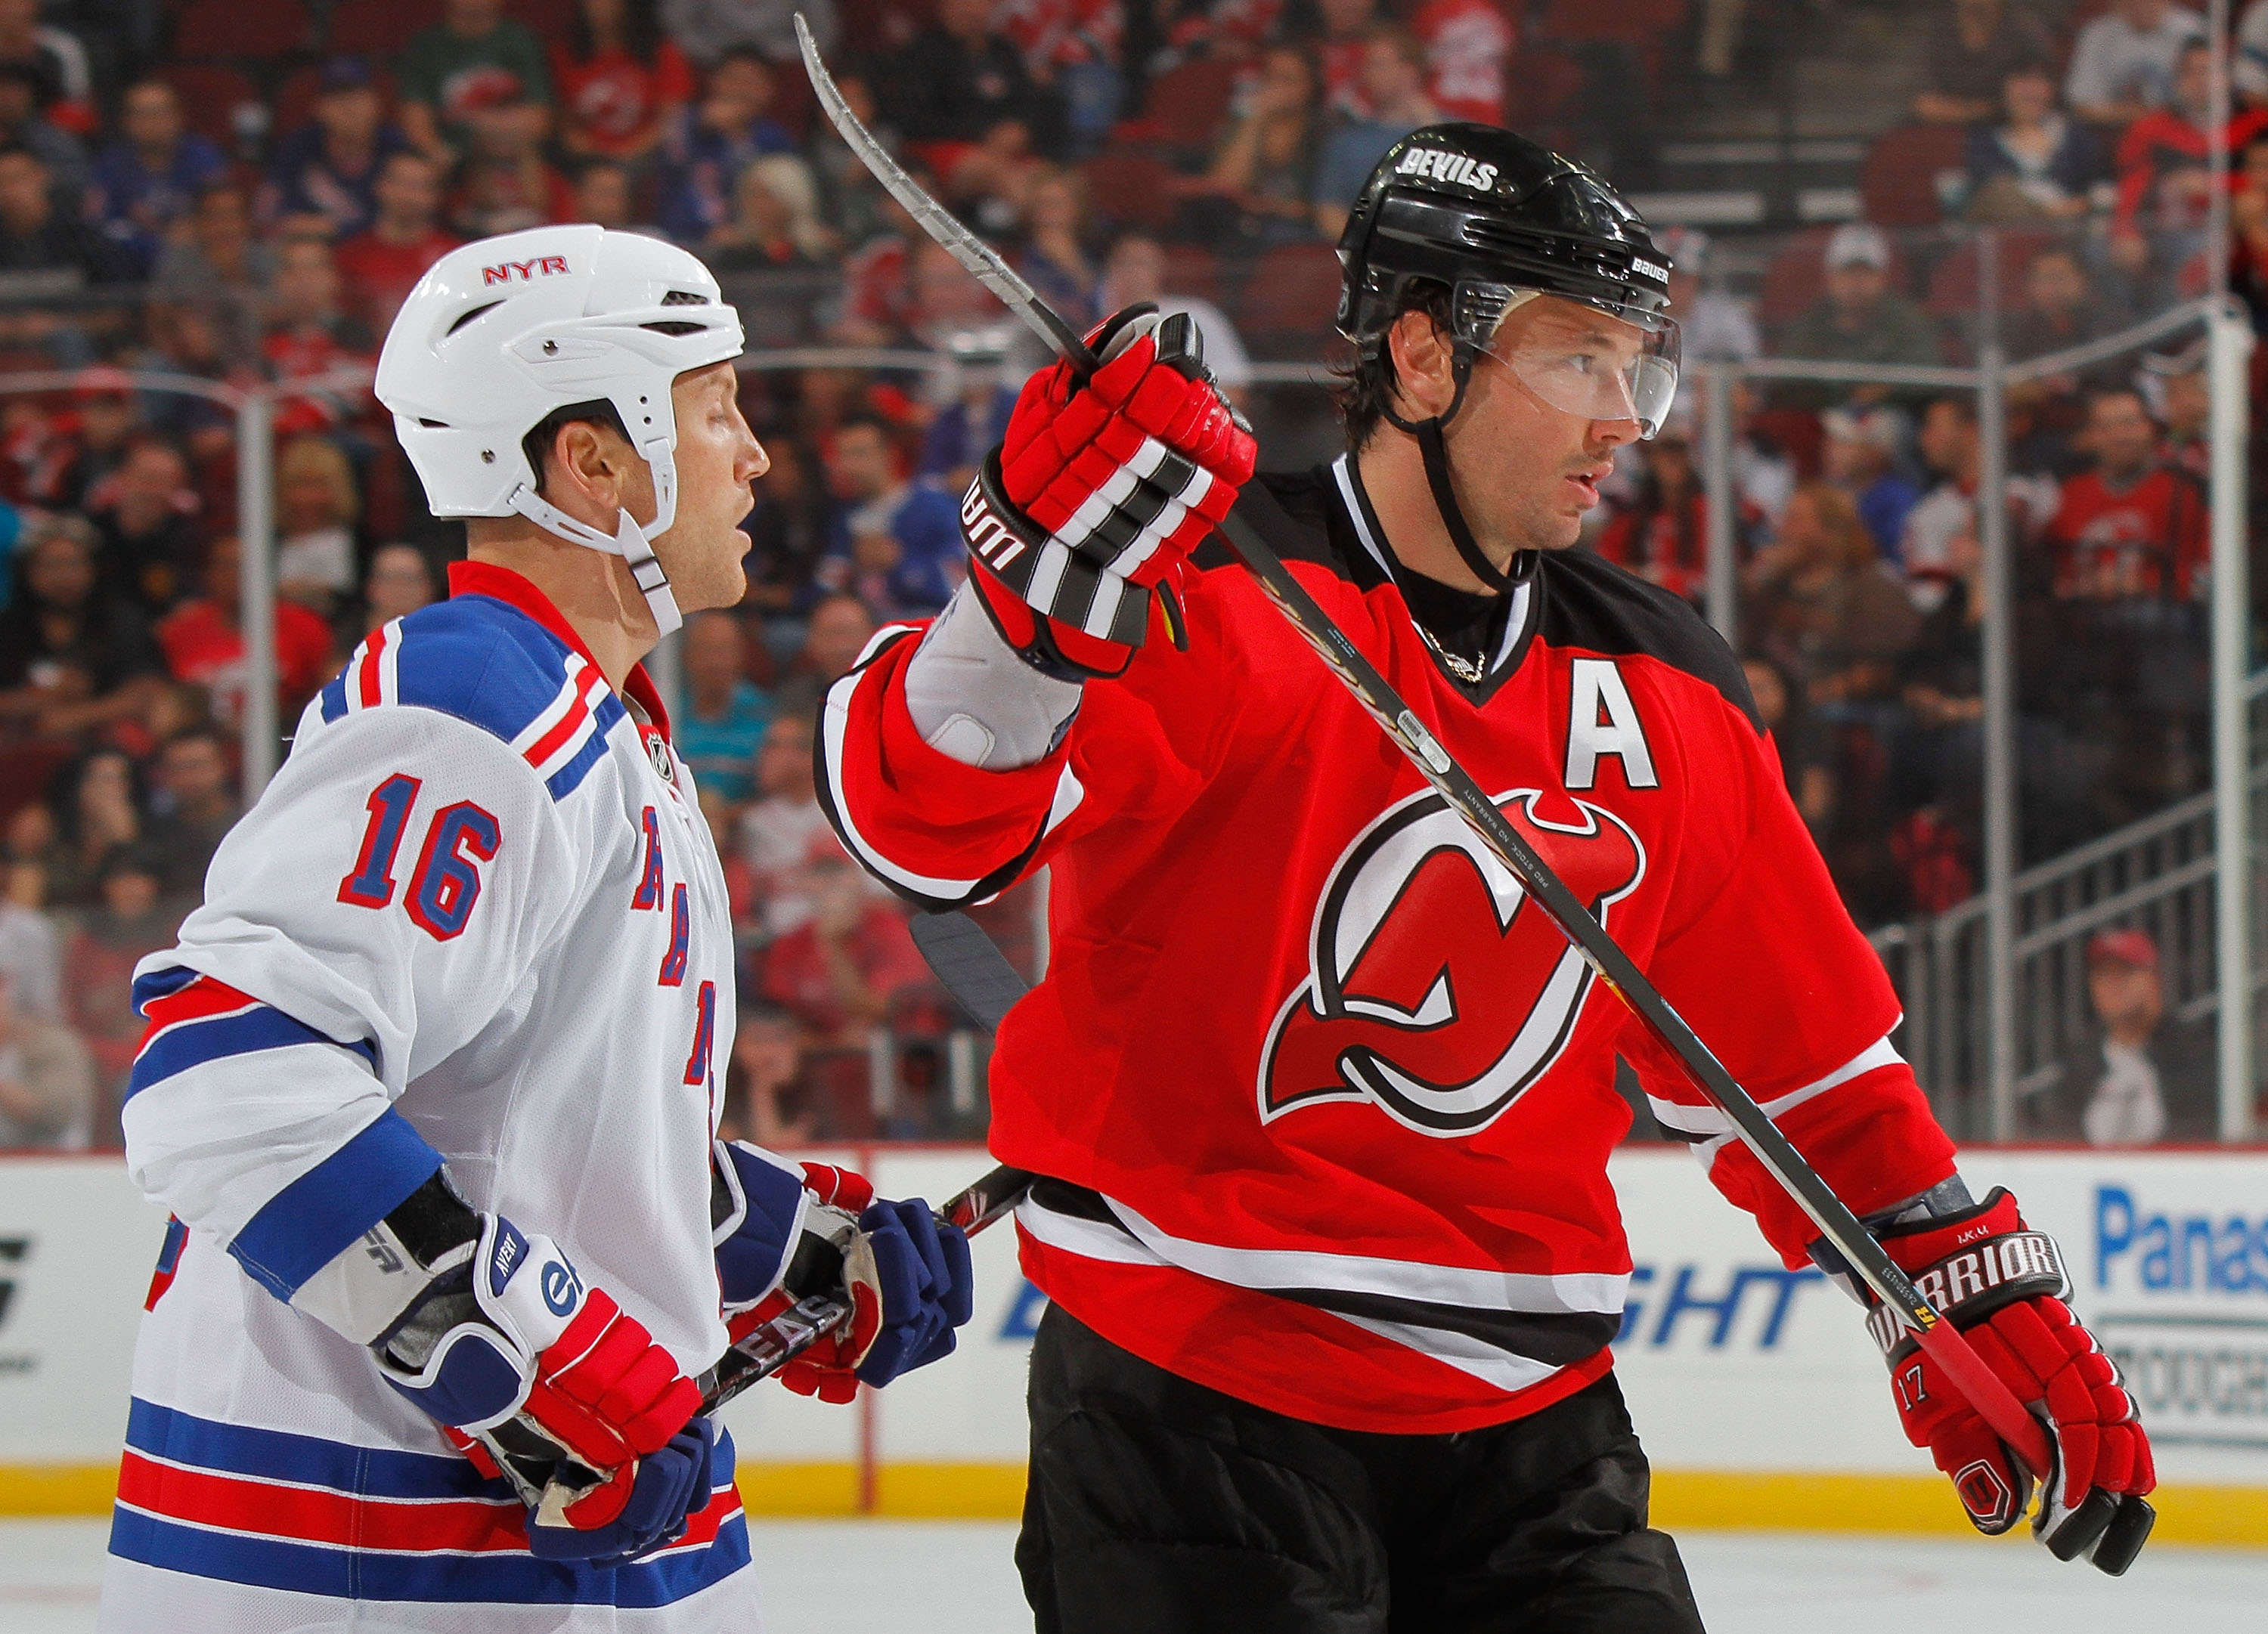 NEWARK, NJ - SEPTEMBER 25:  Sean Avery #16 of the New York Rangers covers Ilya Kovalchuk #17 of the New Jersey Devils during a preseason hockey game at the Prudential Center on September 25, 2010 in Newark, New Jersey.  (Photo by Paul Bereswill/Getty Imag